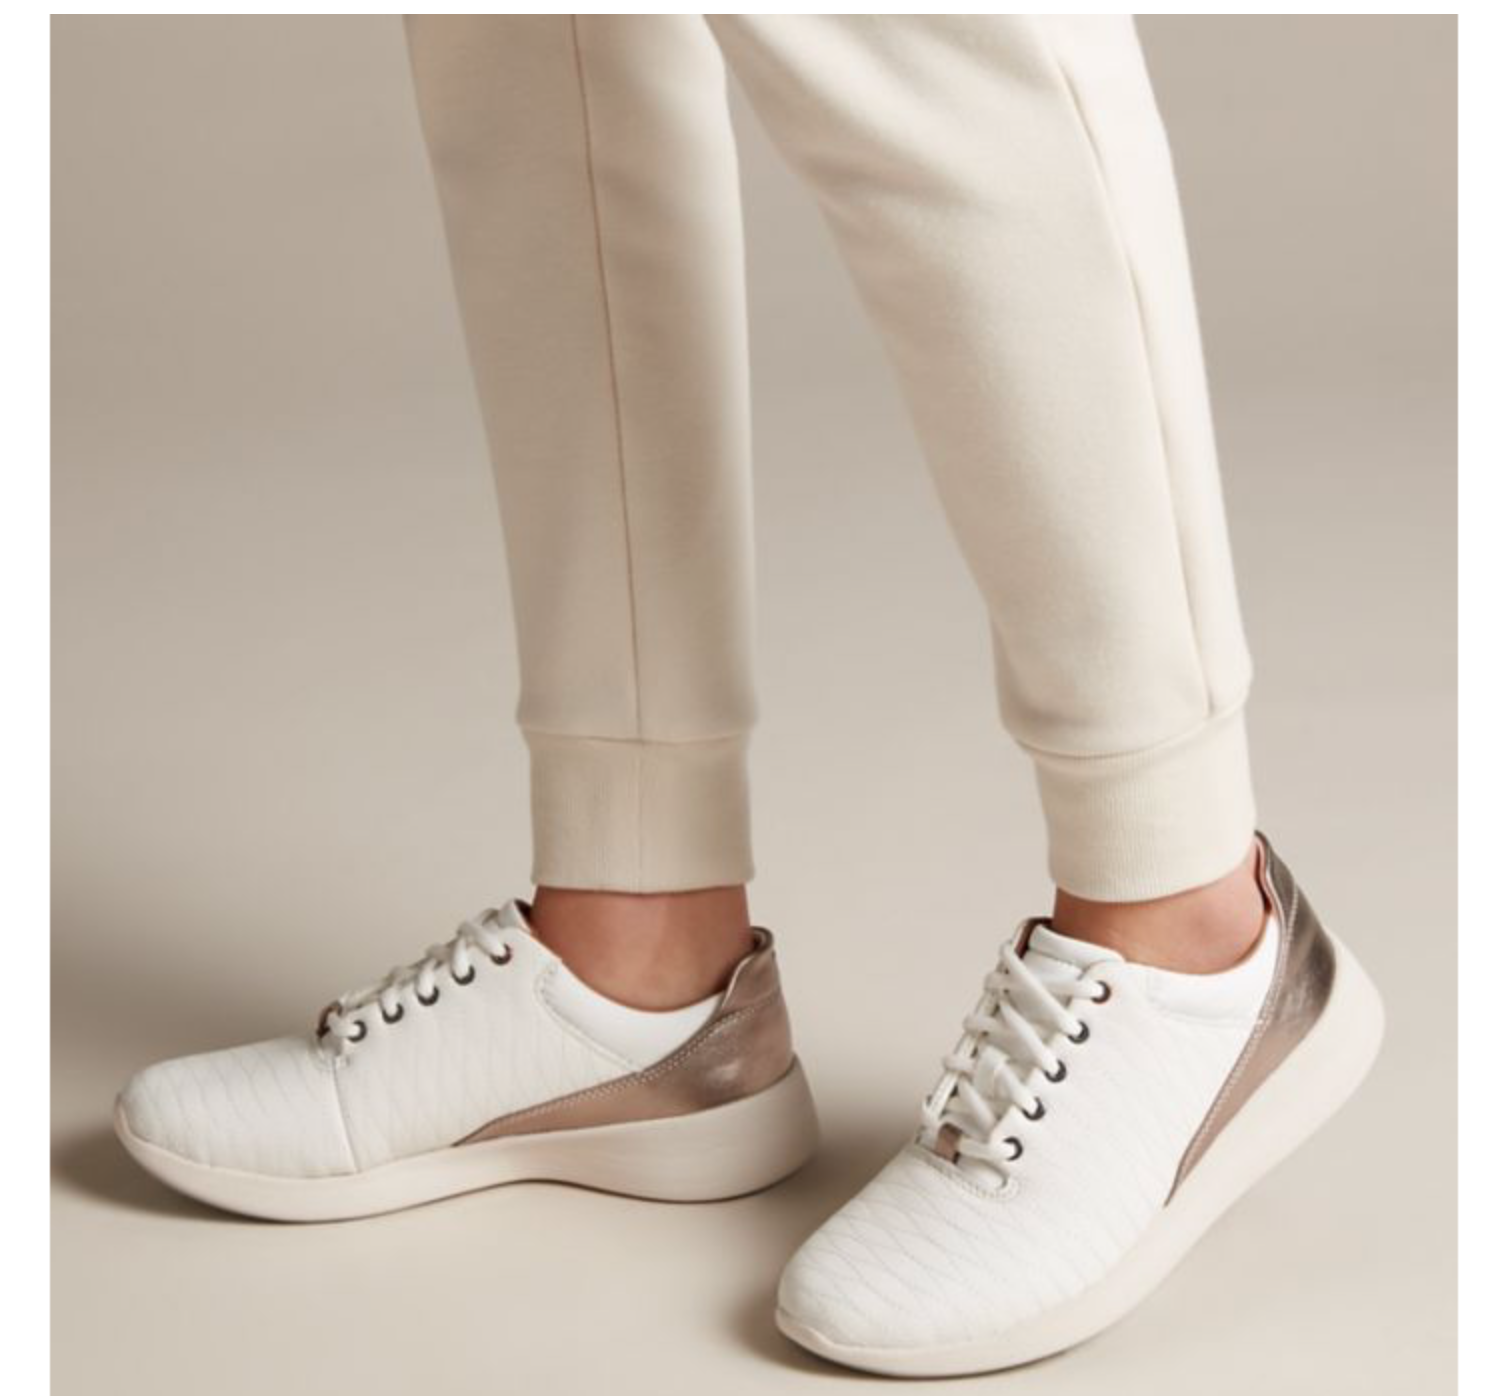 Clarks by Unstructured Women's UN Alfresco LO White White White Leather shoes 26135710 64a822